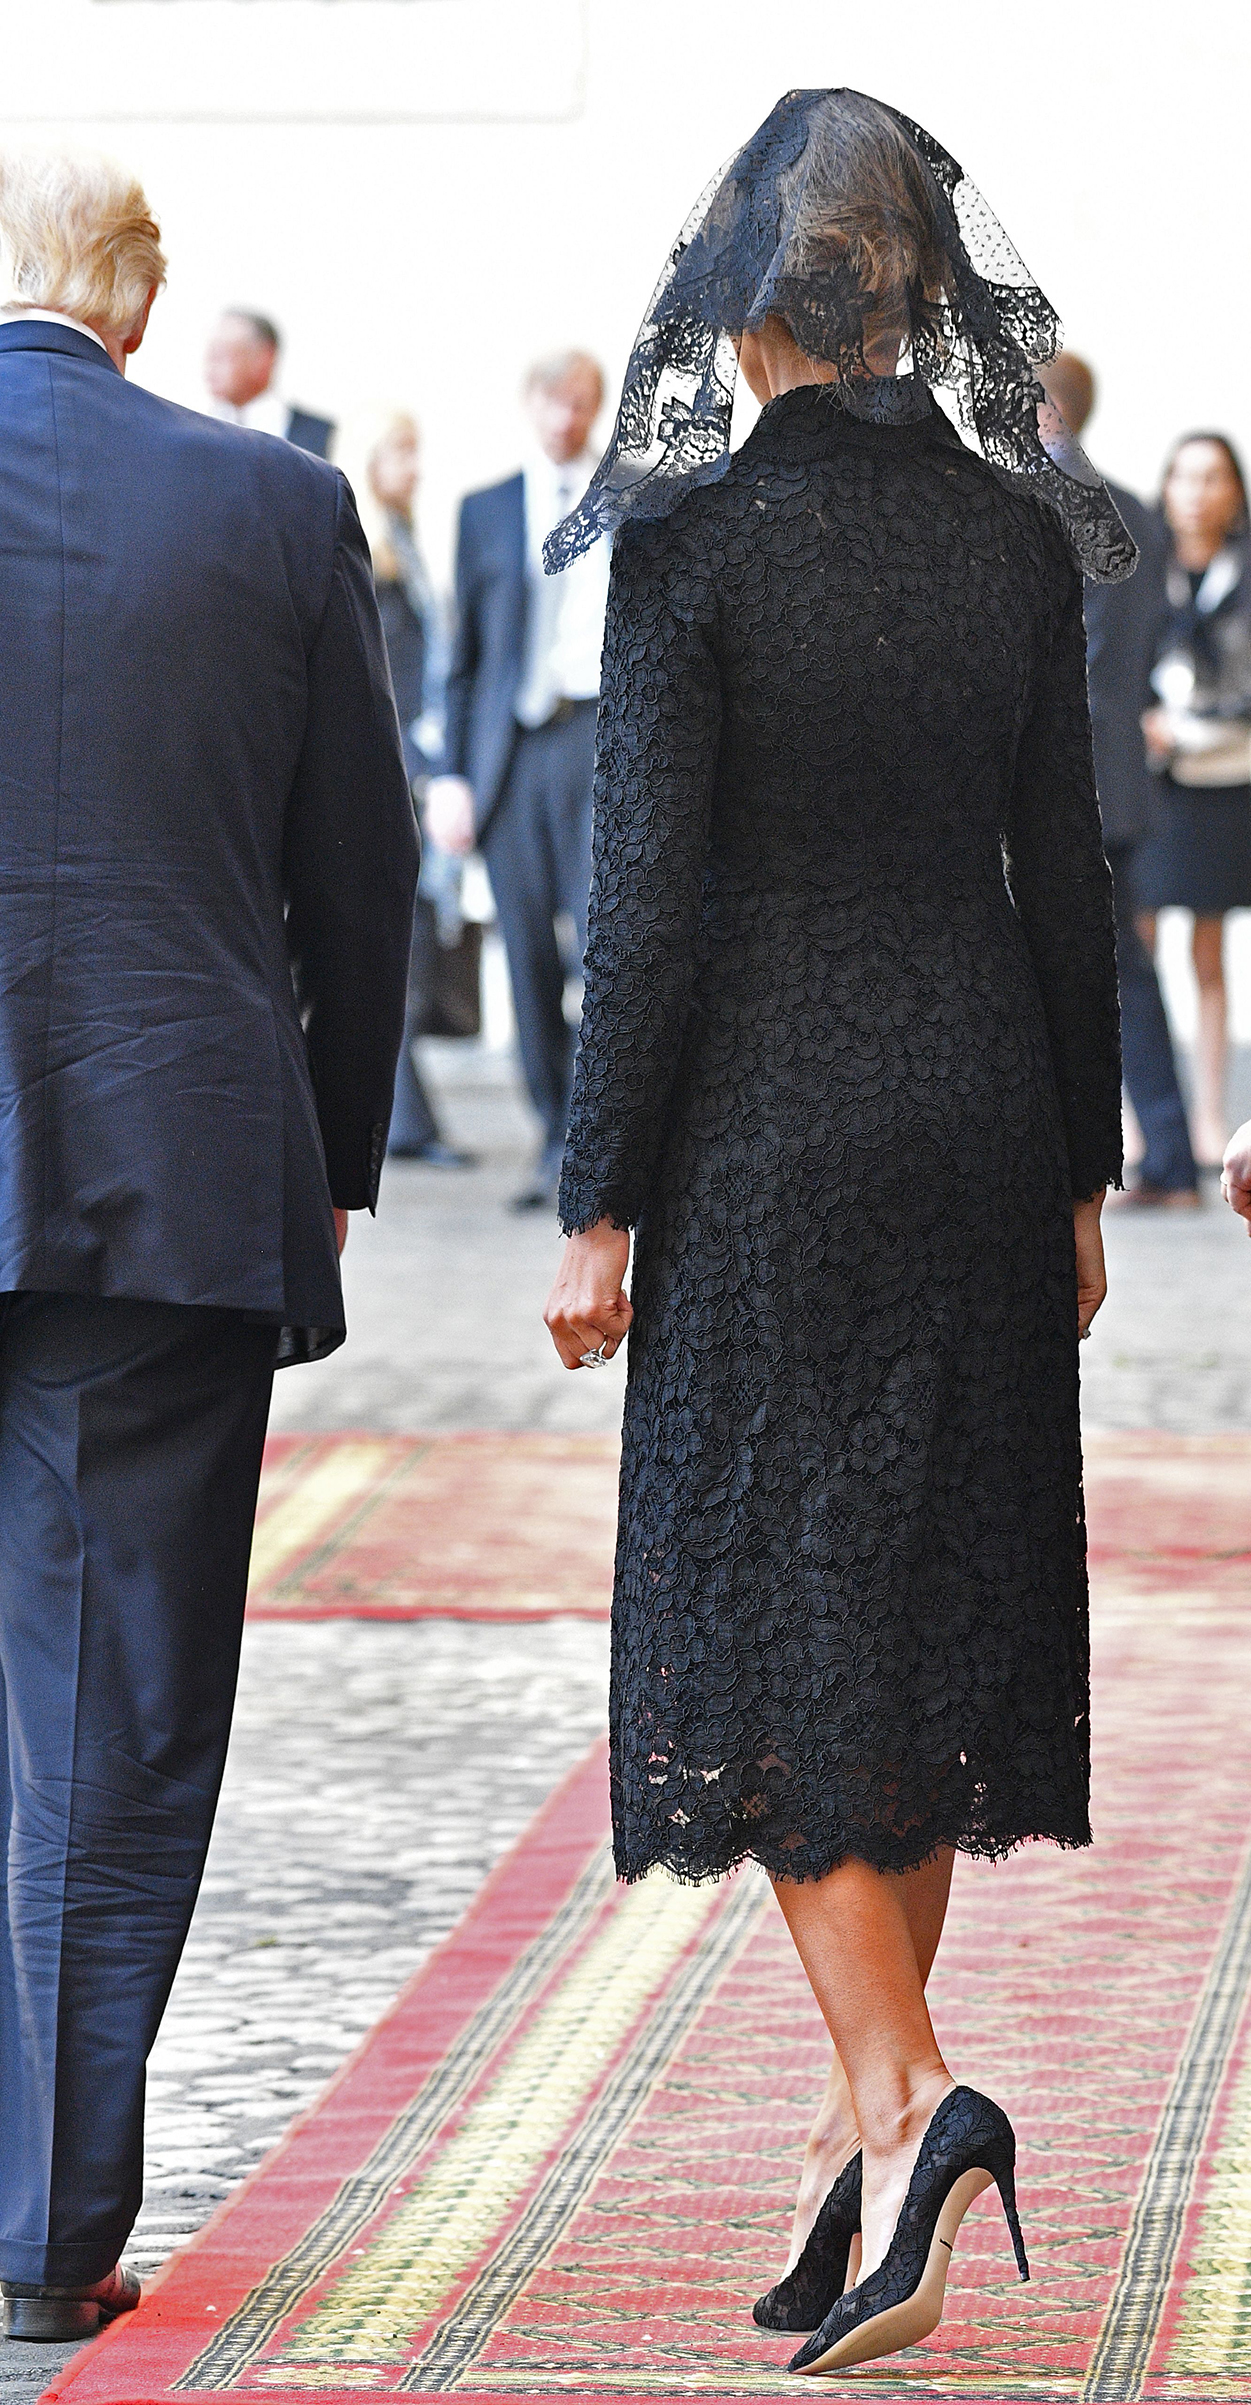 First lady Melania Trump  wearing a lace Dolce & Gabbana outfit, arrives at the Vatican prior a private audience of US President Donald Trump (L) with Pope Francis, on May 24, 2017.